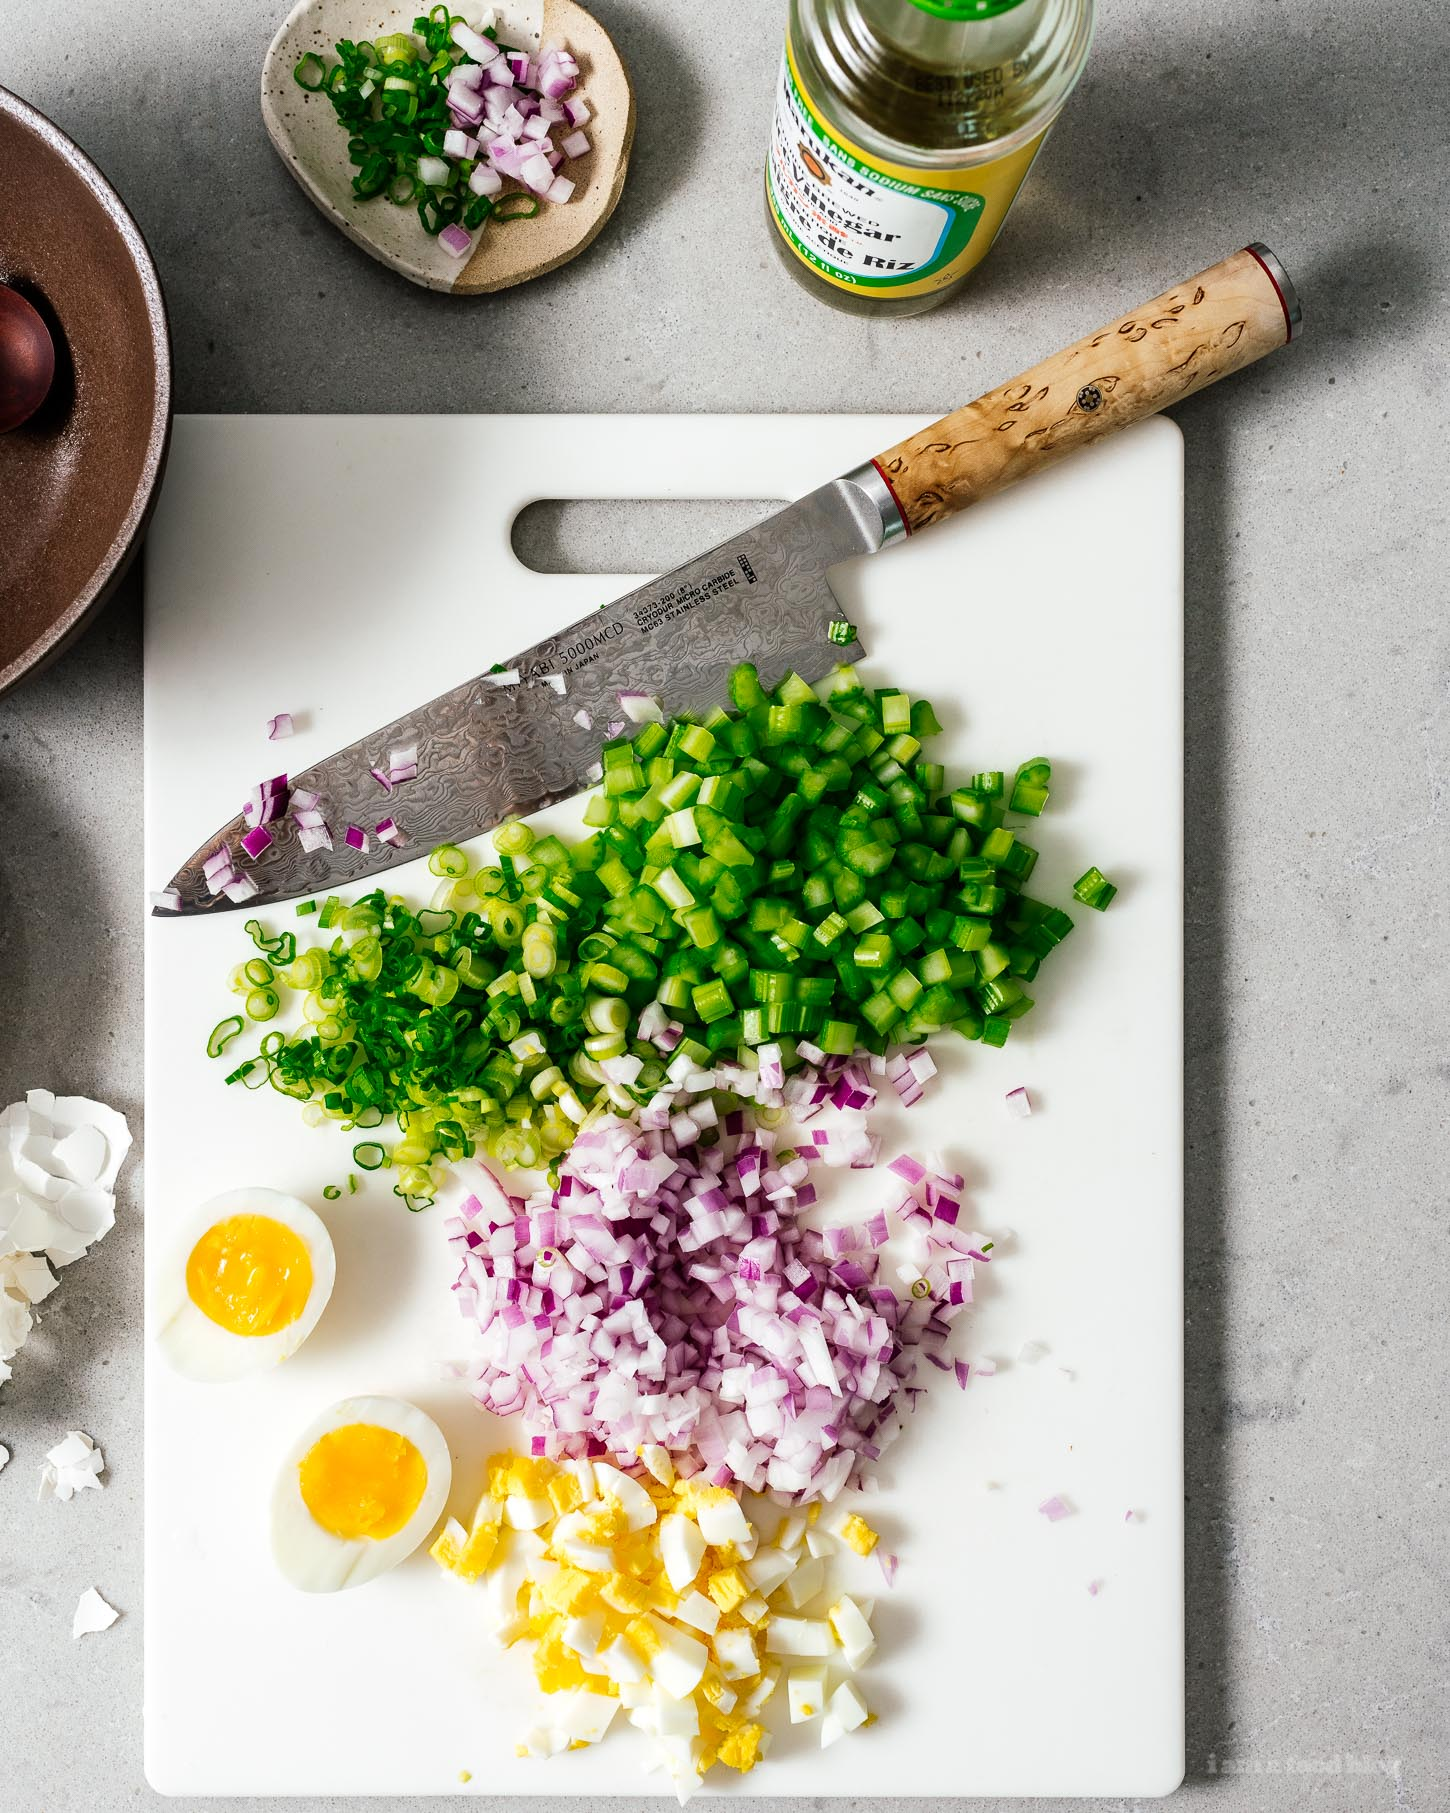 Make this classic perfect picnic potato salad and bring it to ever summer gathering! Creamy potatoes, crunchy celery, onions, and eggs combine into a salad you'll be making and eating over and over again thanks to a secret ingredient: rice vinegar for tang. #potatosalad #potatoes #recipes #potatosaladrecipe